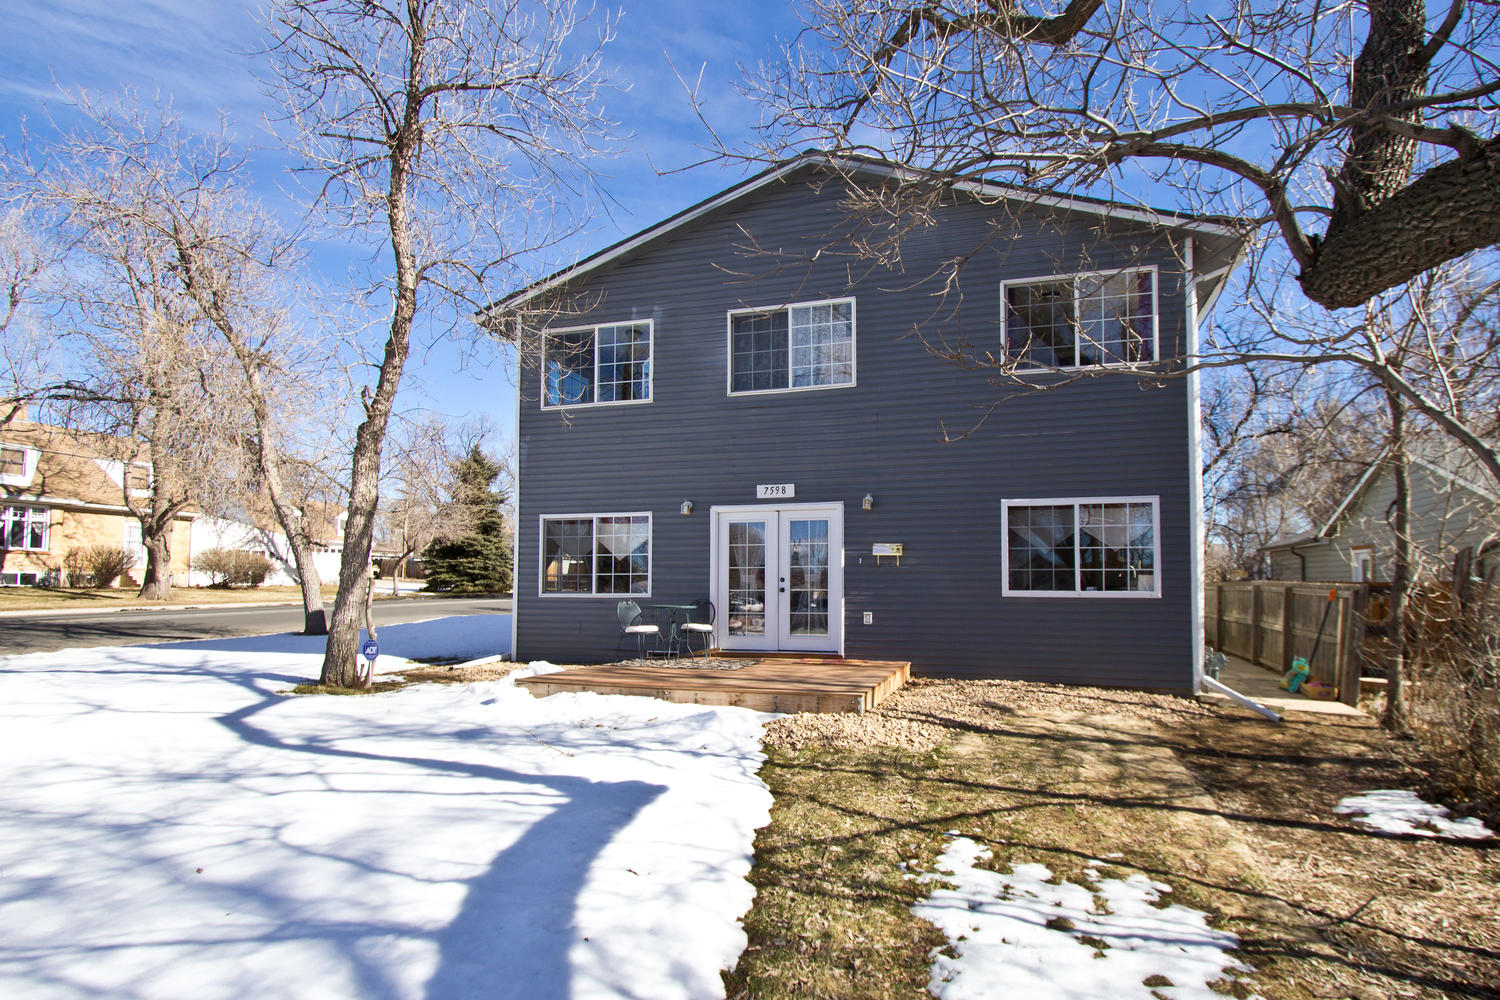 7598 Bradburn Blvd, Westminster, CO 80030